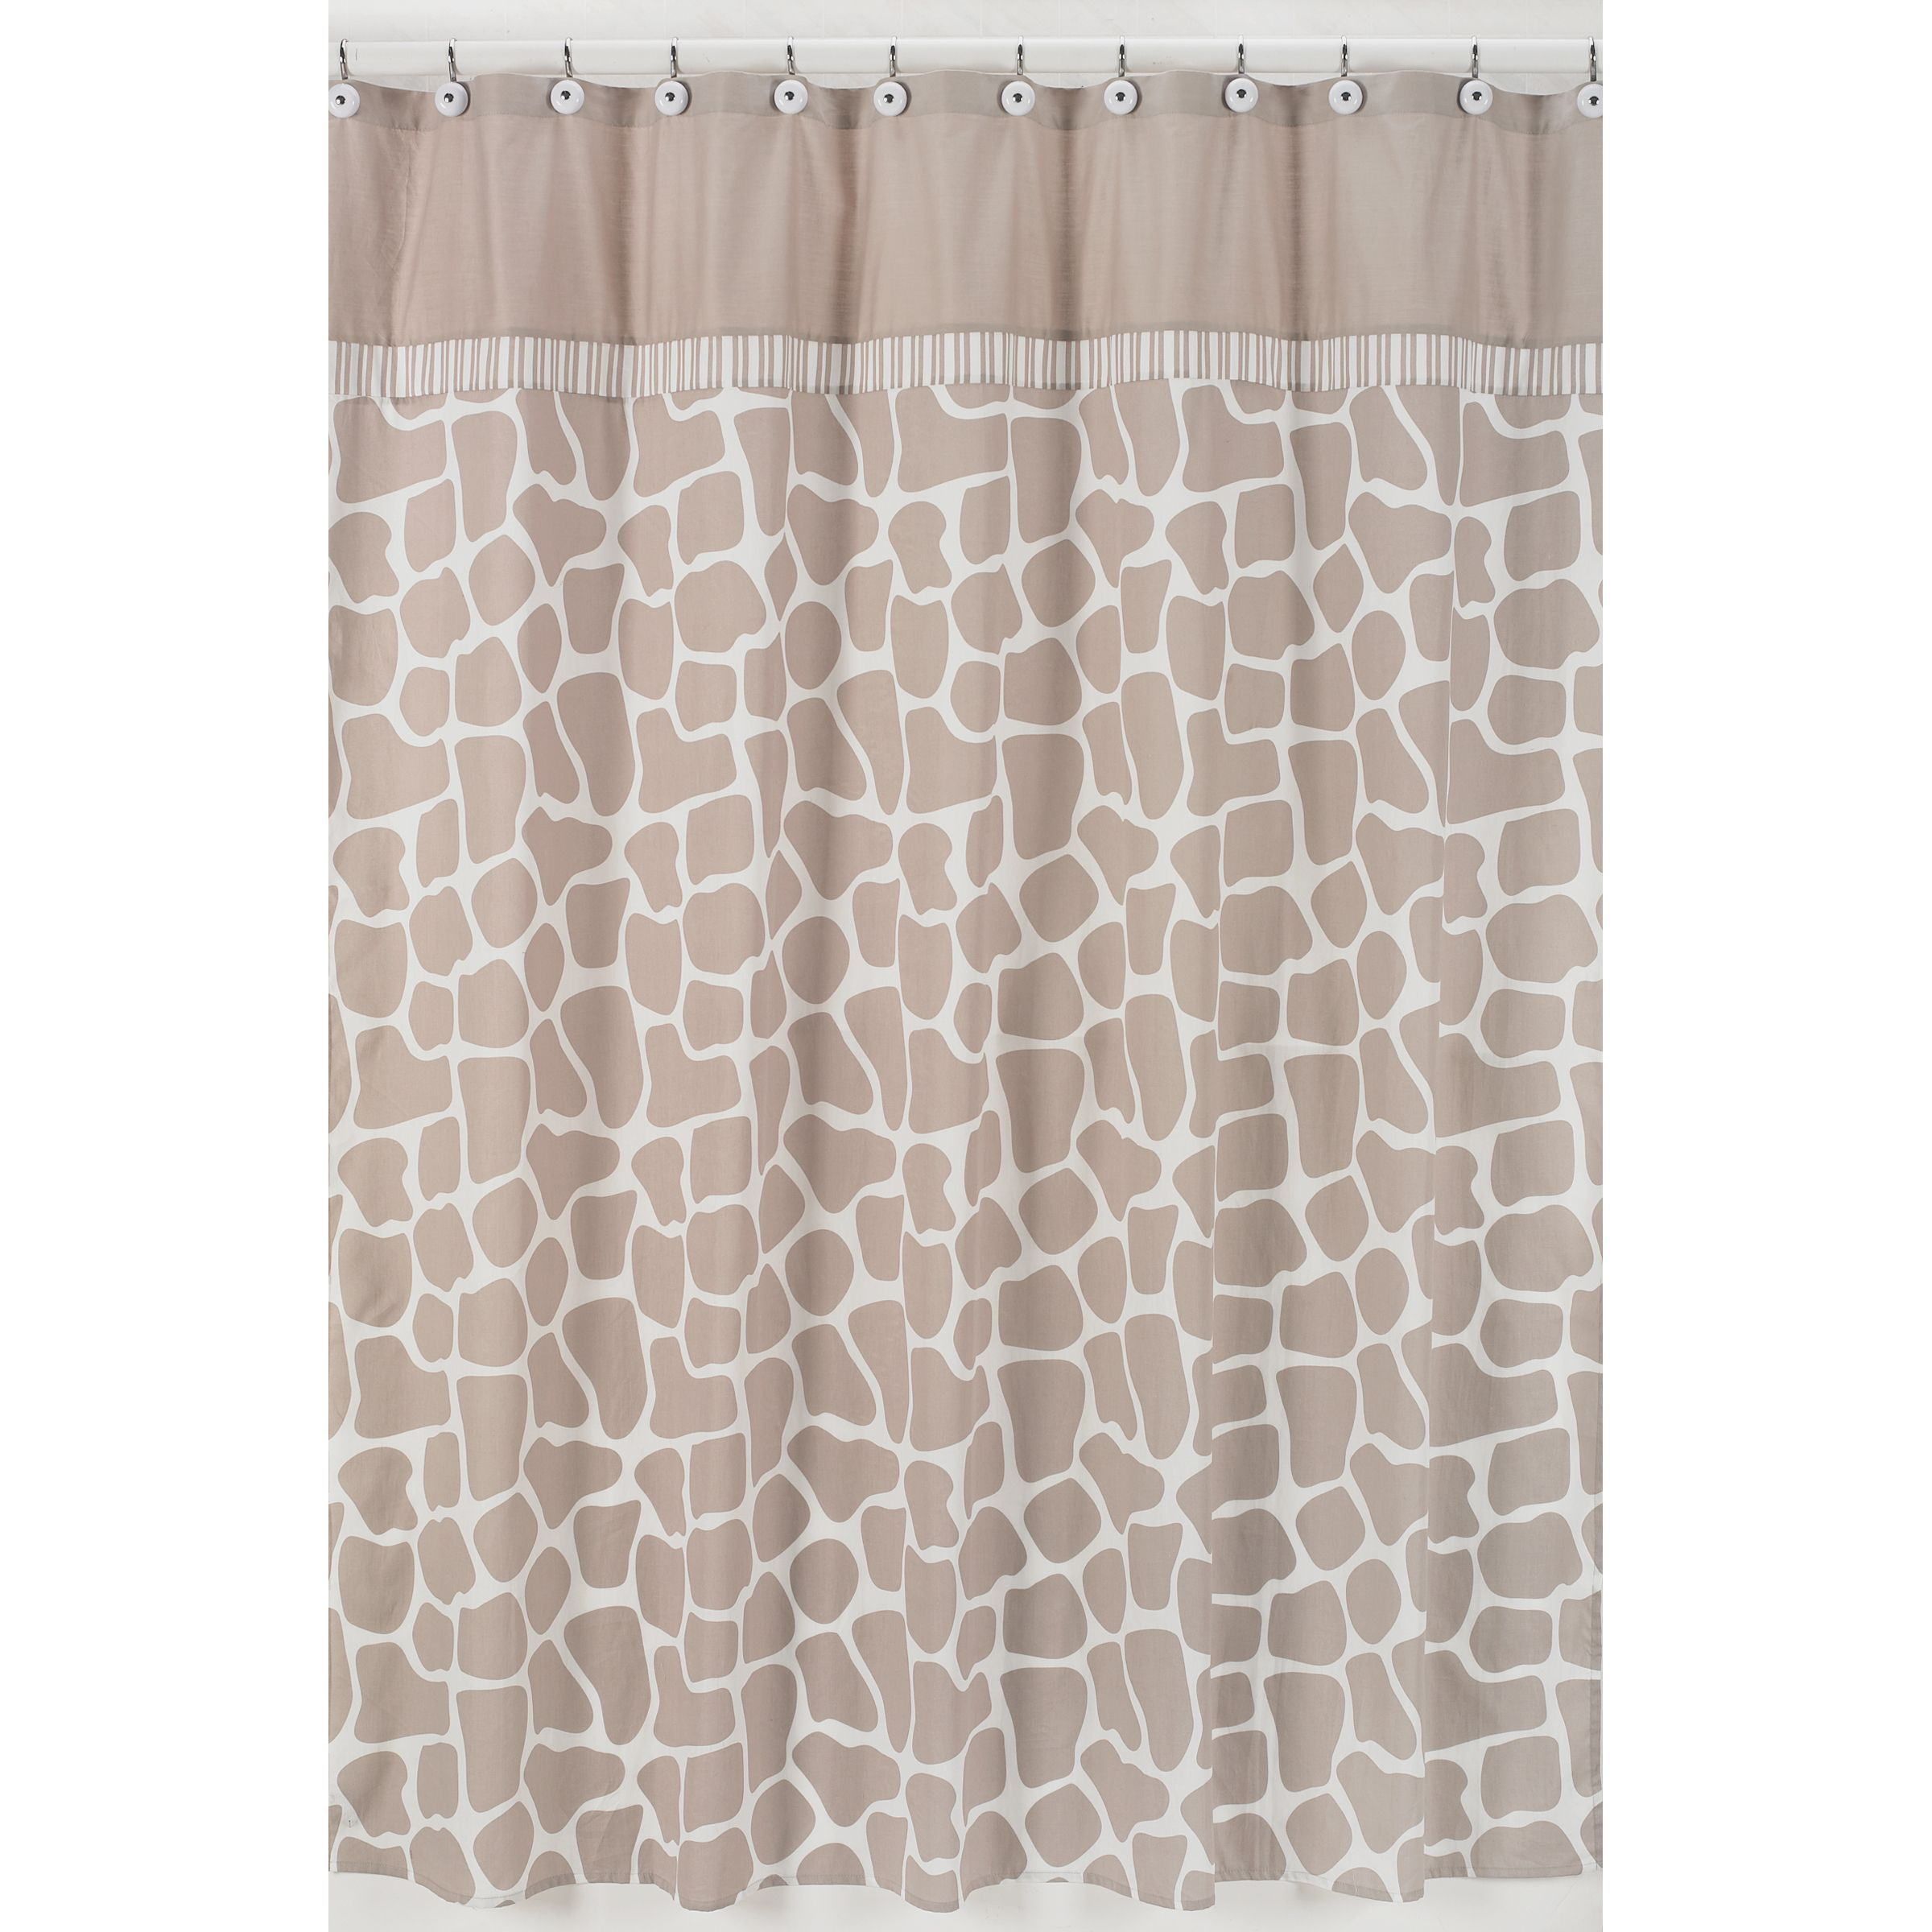 Sweet Jojo Designs Giraffe Neutral Shower Curtain By Sweet Jojo Designs